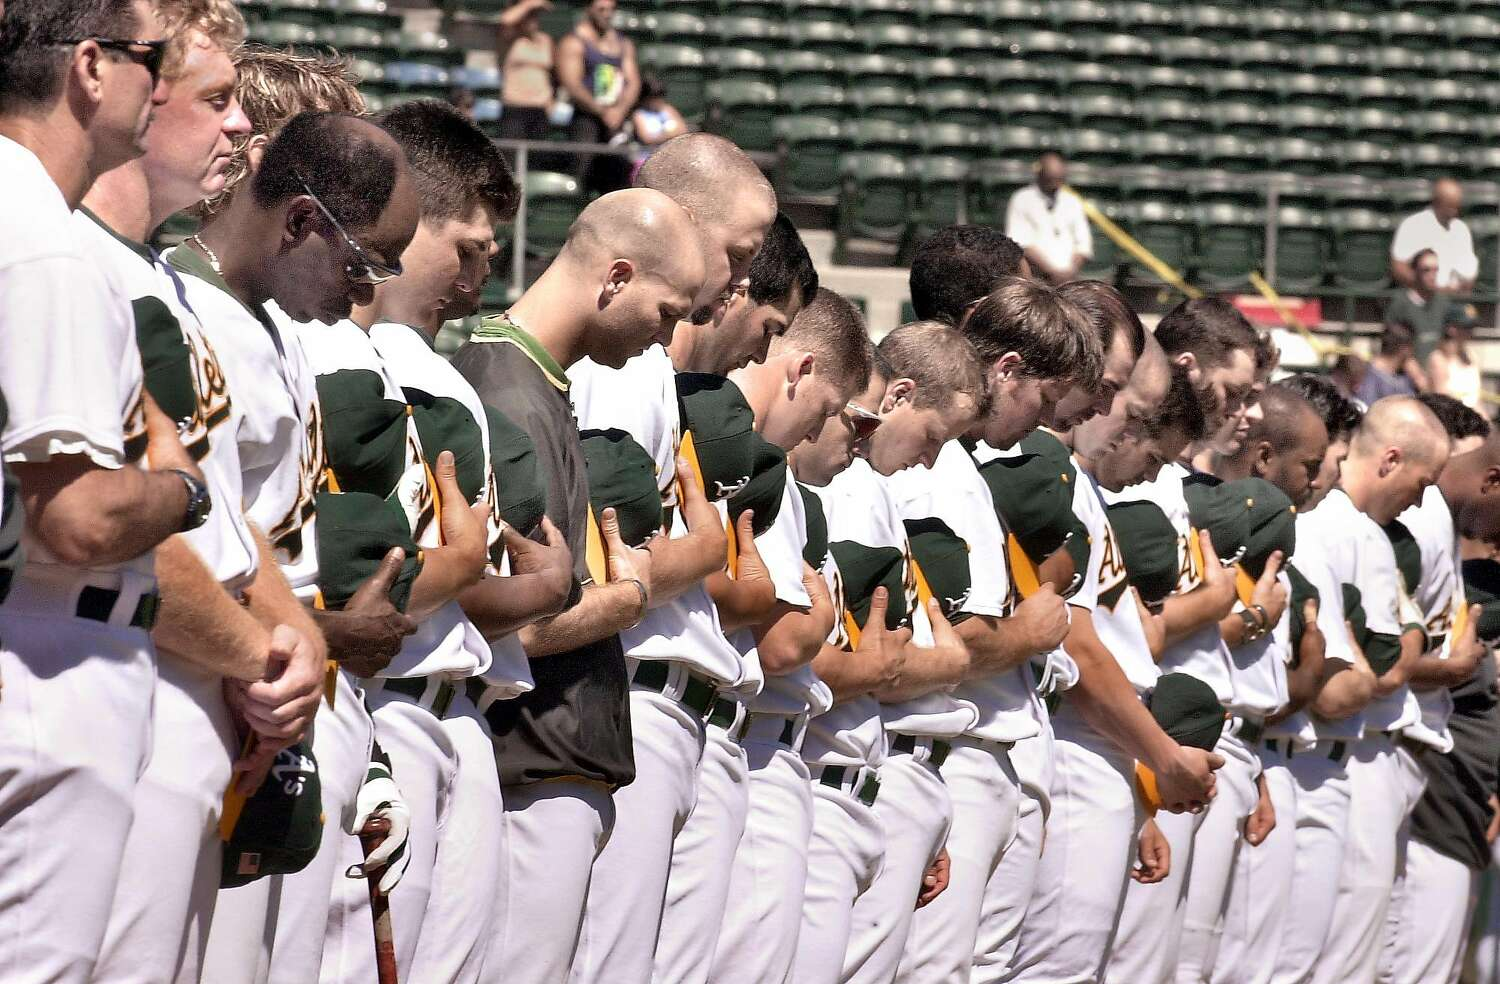 Members of the Oakland Athletics baseball team are lined up side by side, and stand with their heads bowed before a 2001 game.